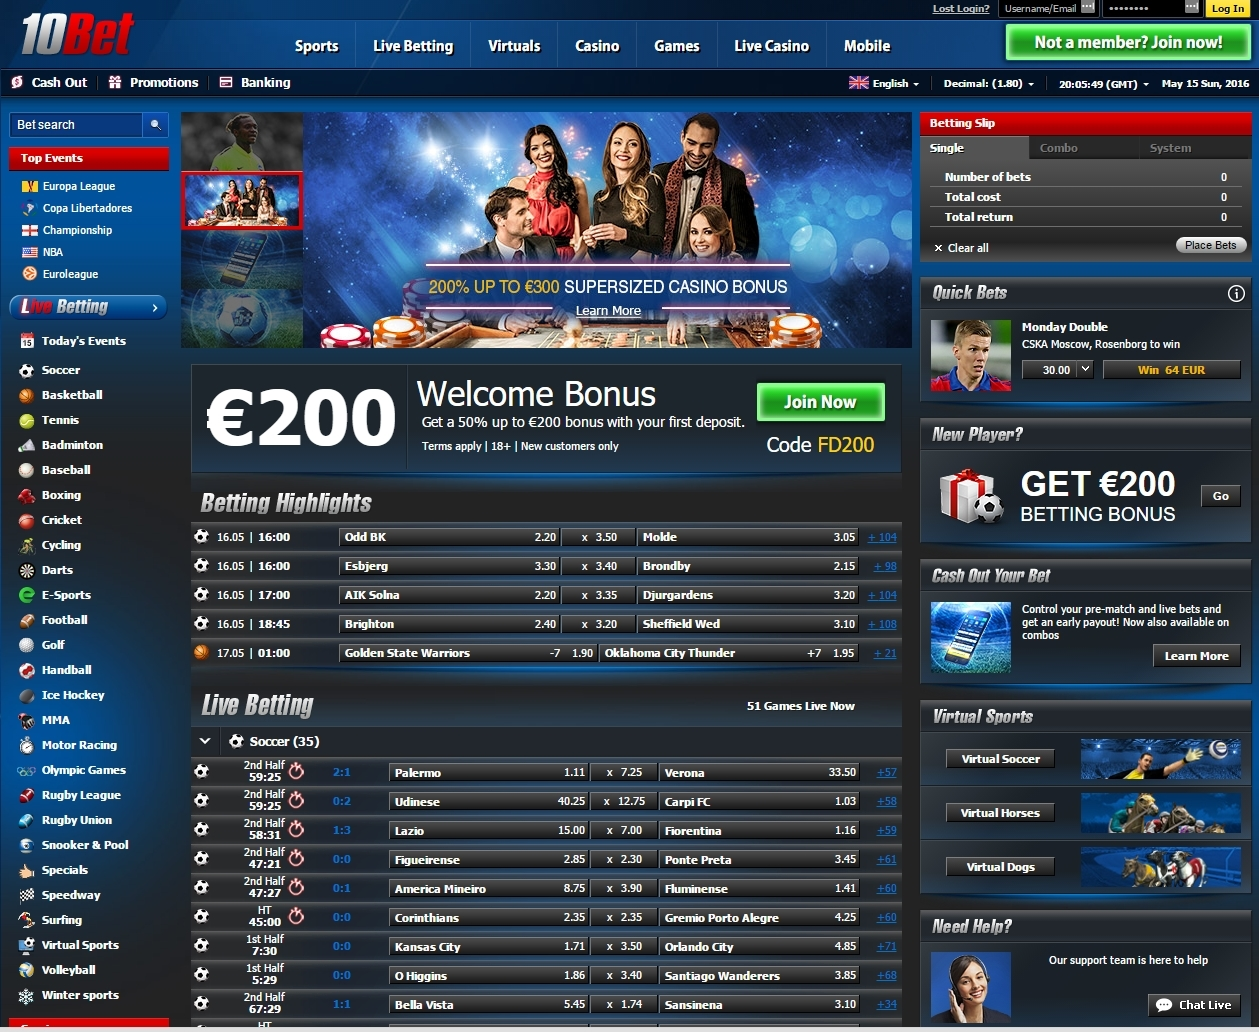 10Bet Sportsbook Main Page Betting Software Interface